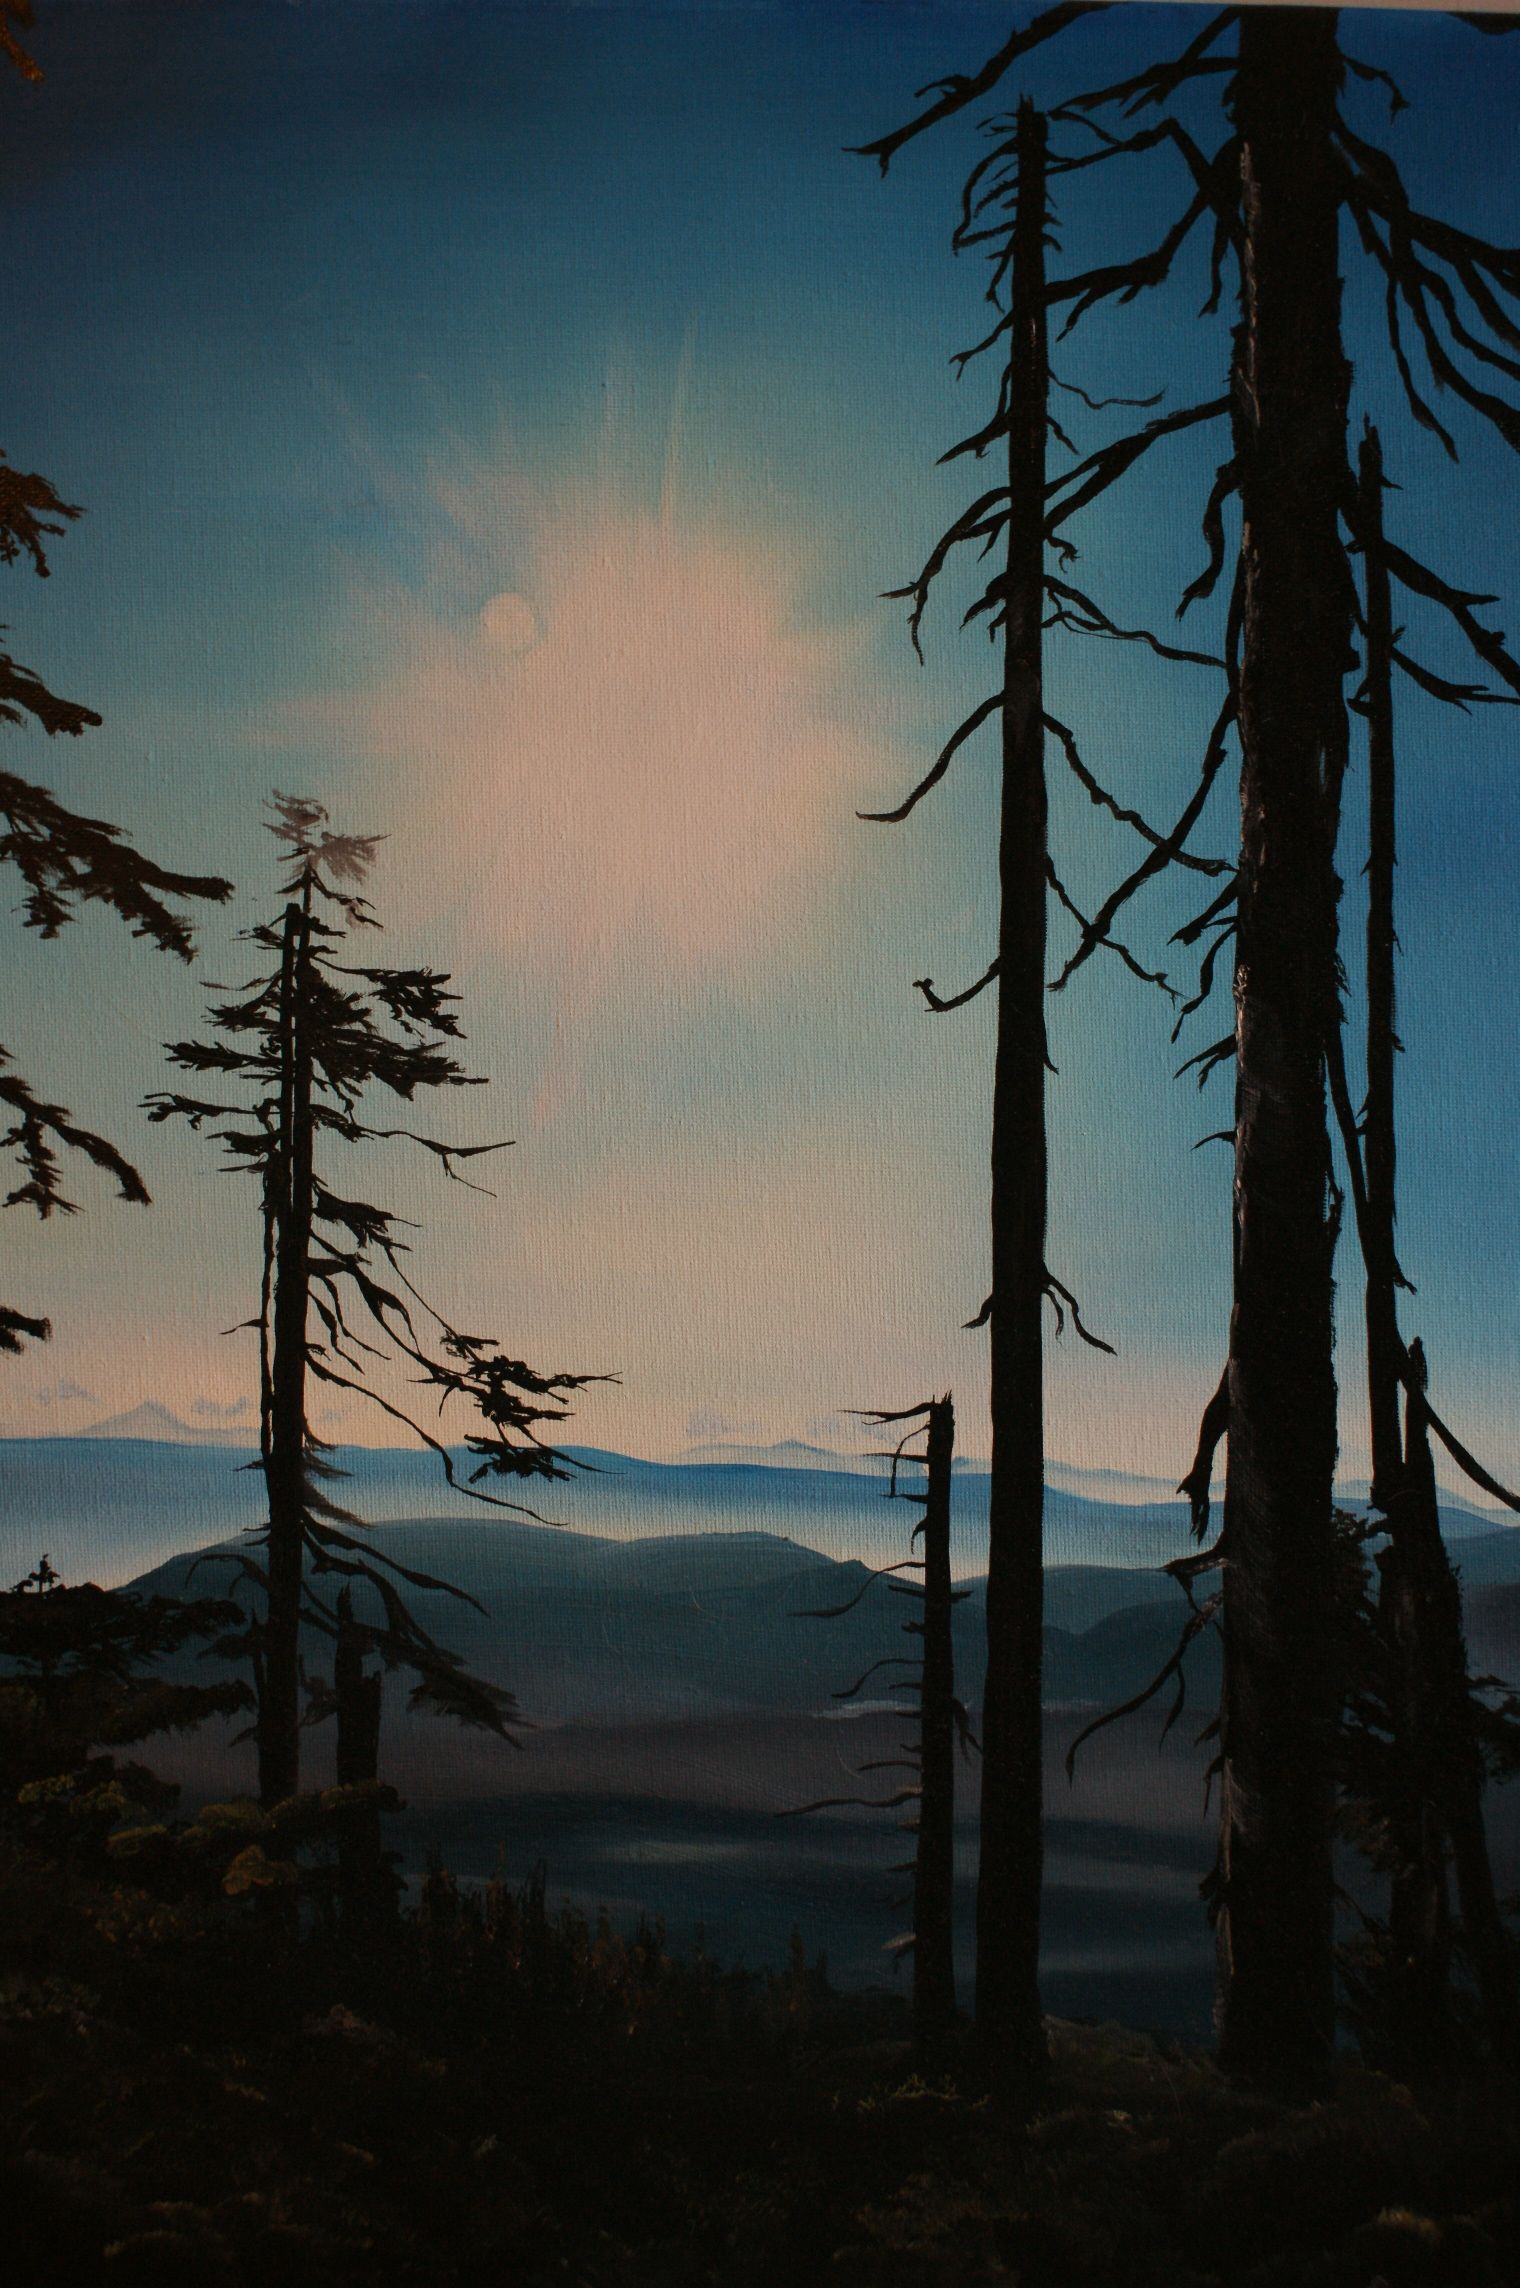 Mount Apps, near Port Alberni on Vancouver Island. Painted